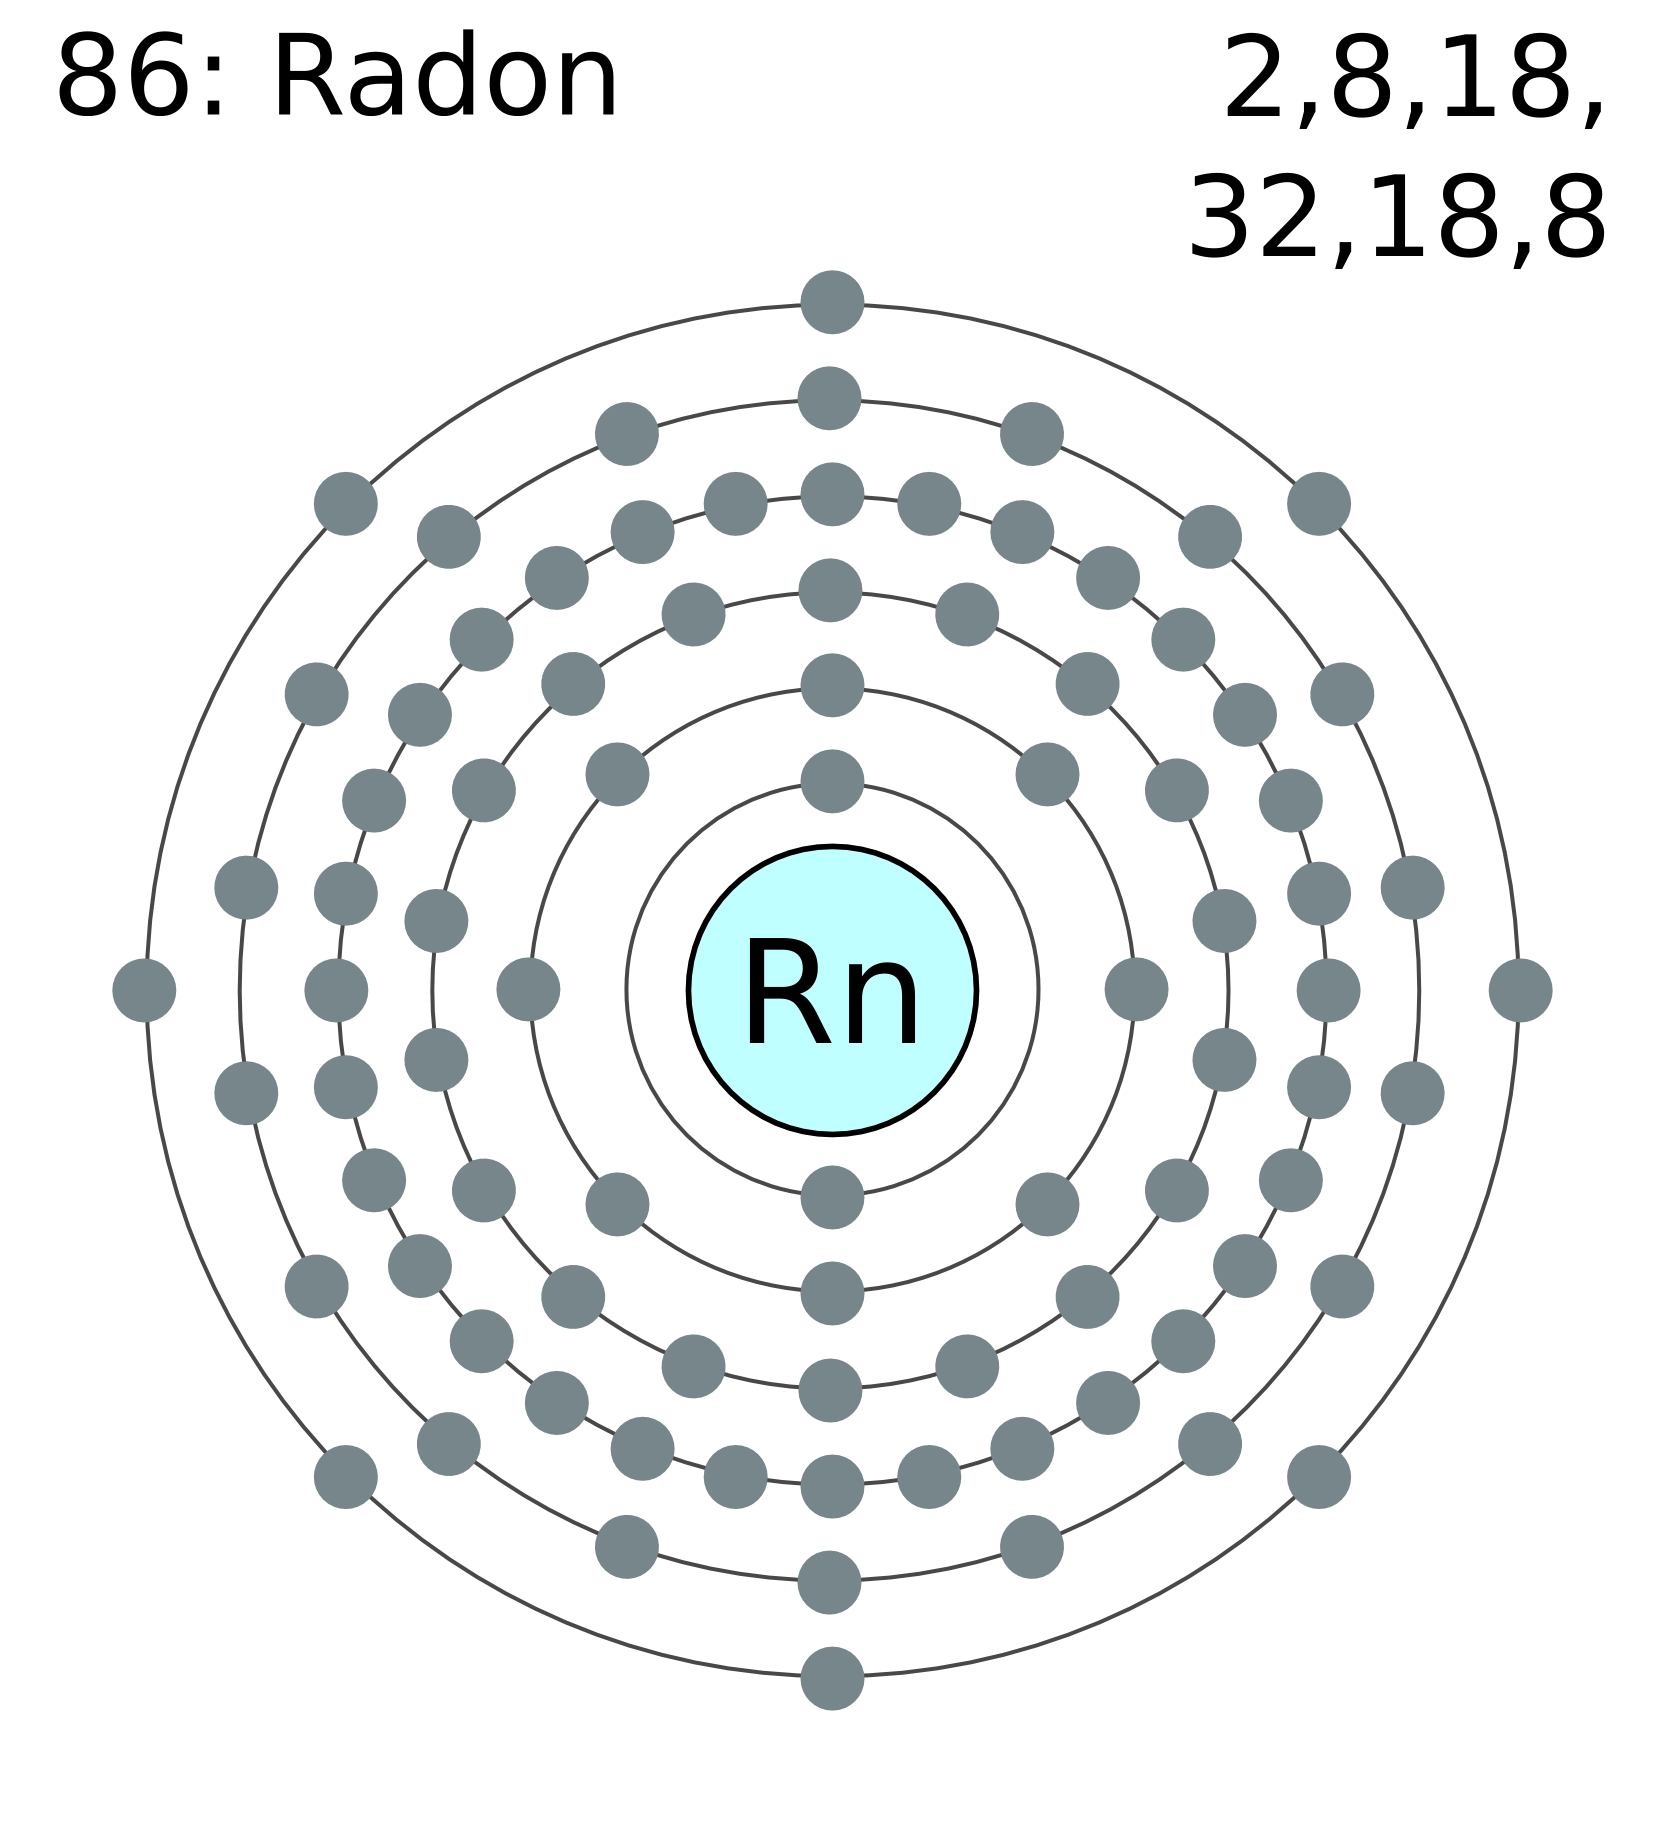 Electron_shell_086_radon file electron shell 086 radon png wikimedia commons radian diagram at edmiracle.co